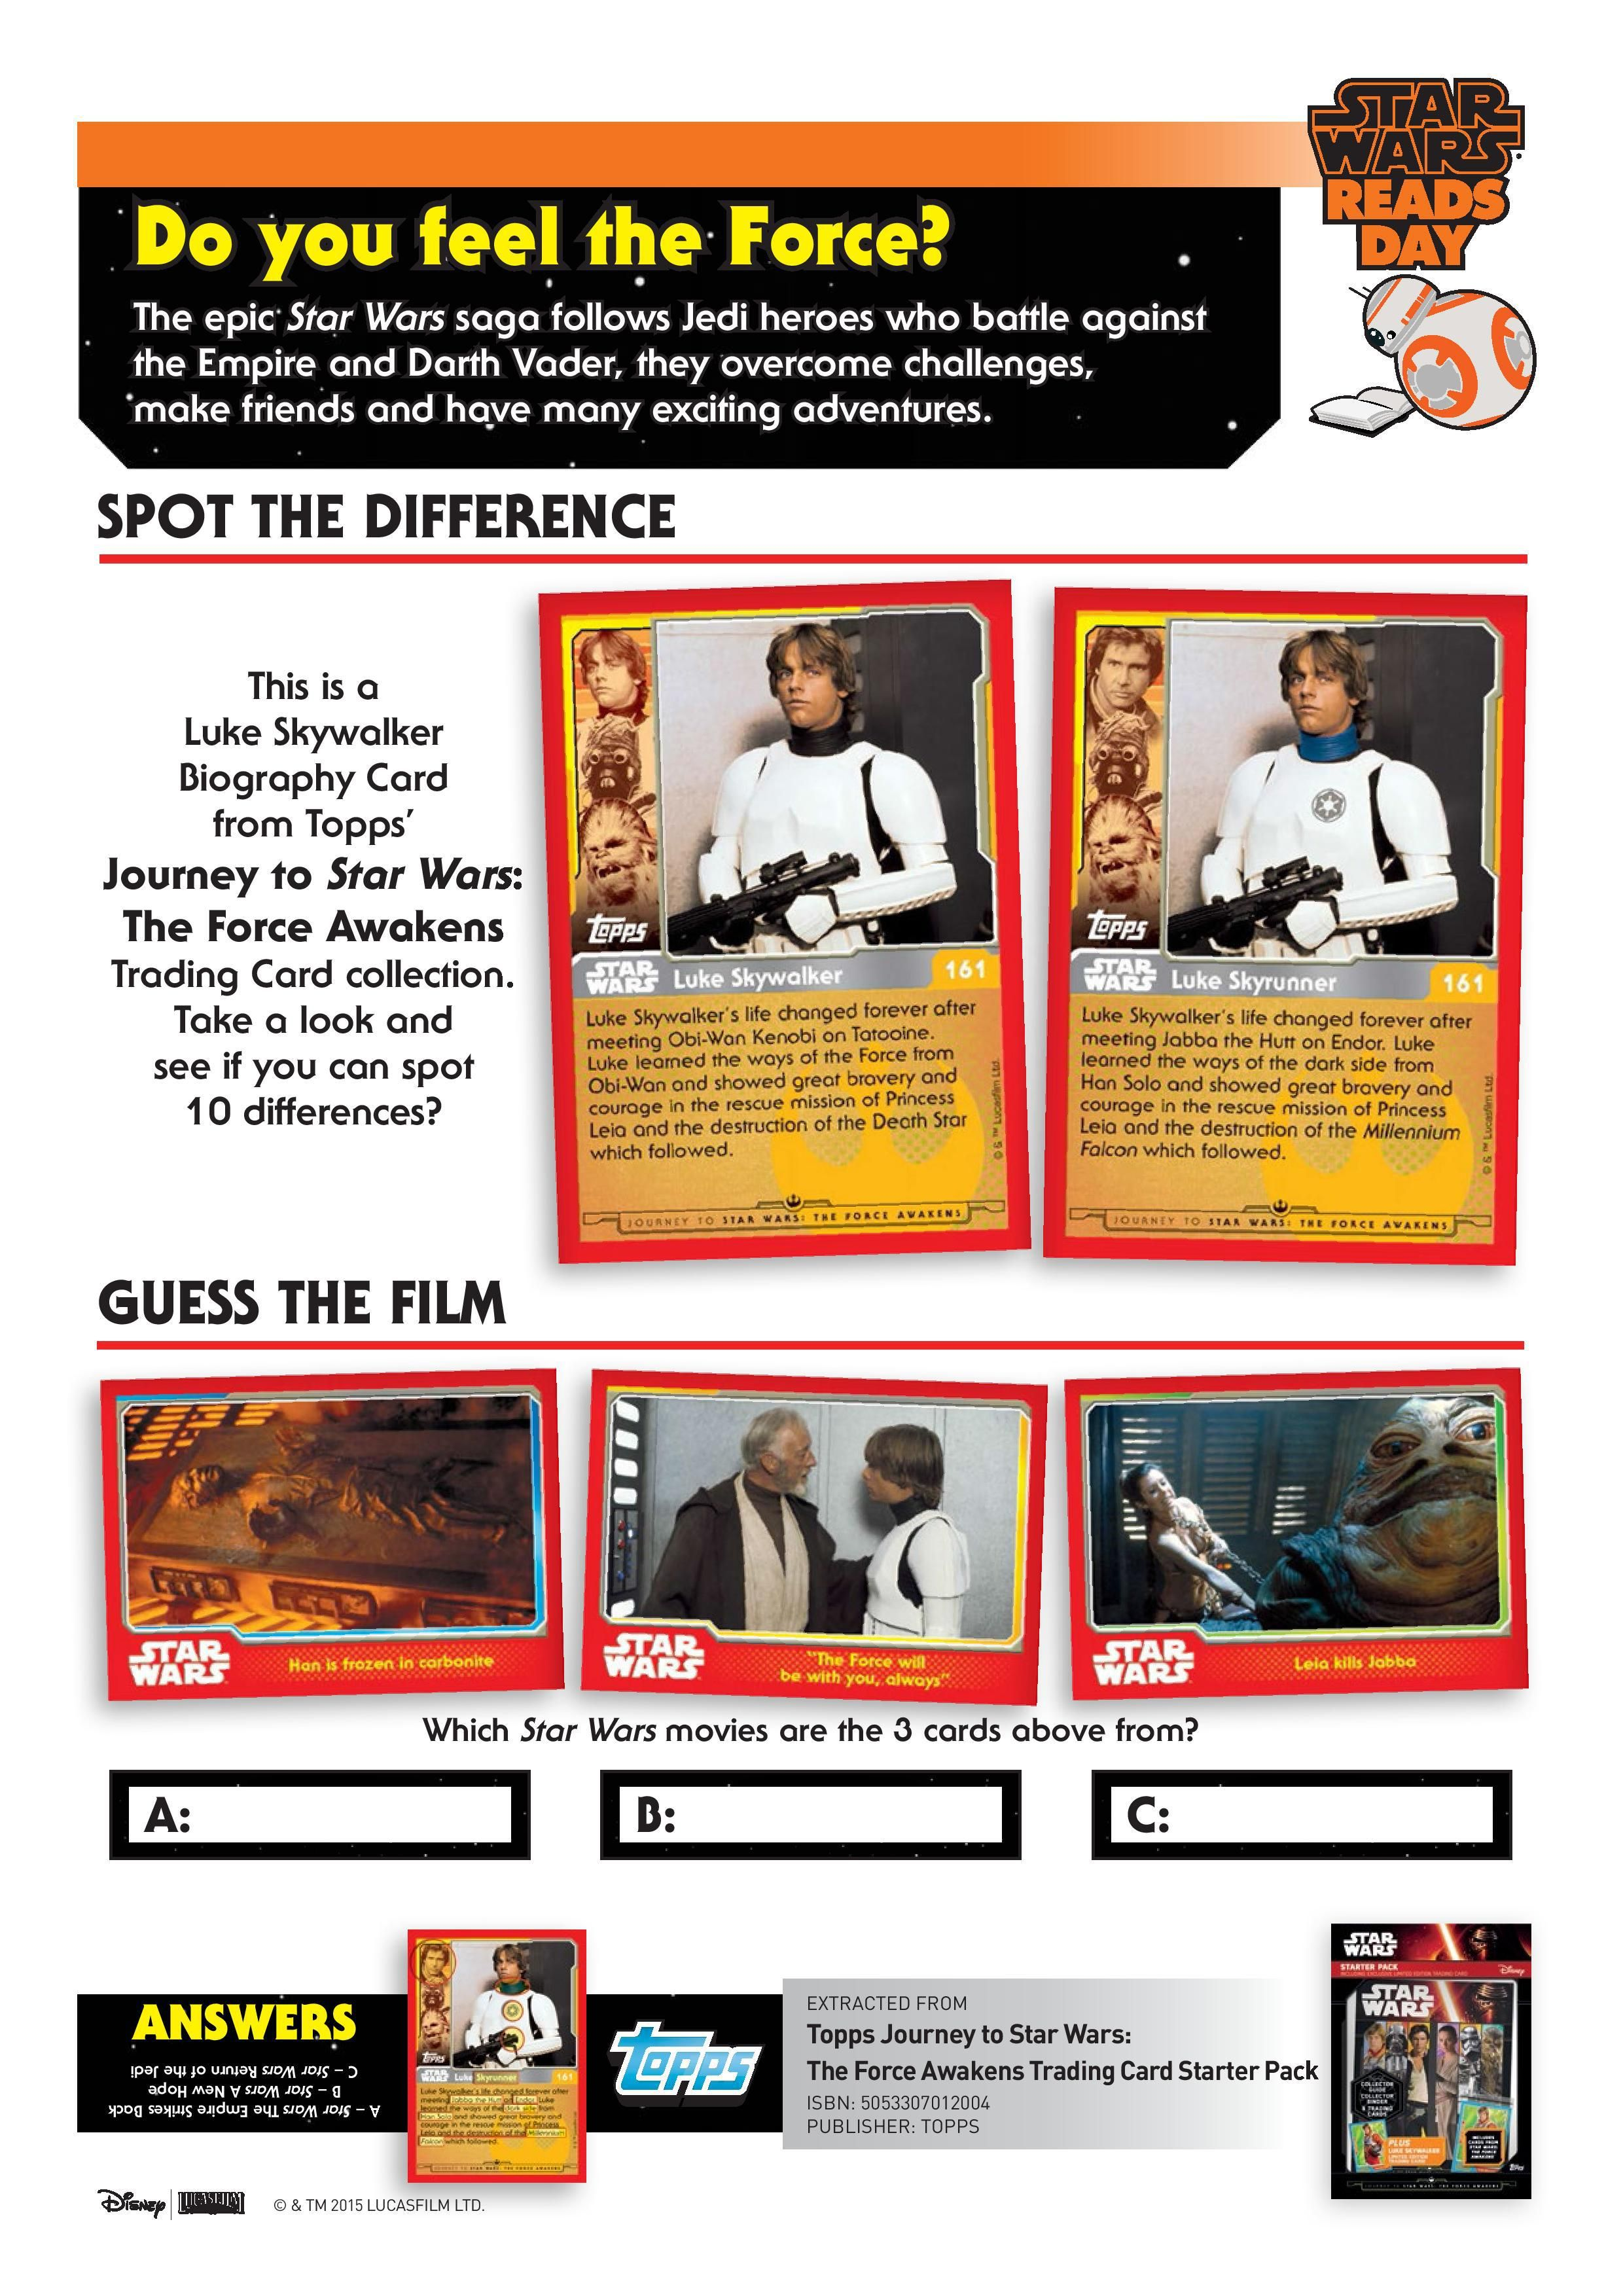 Star Wars Reads Day Activity Sheets Page 005